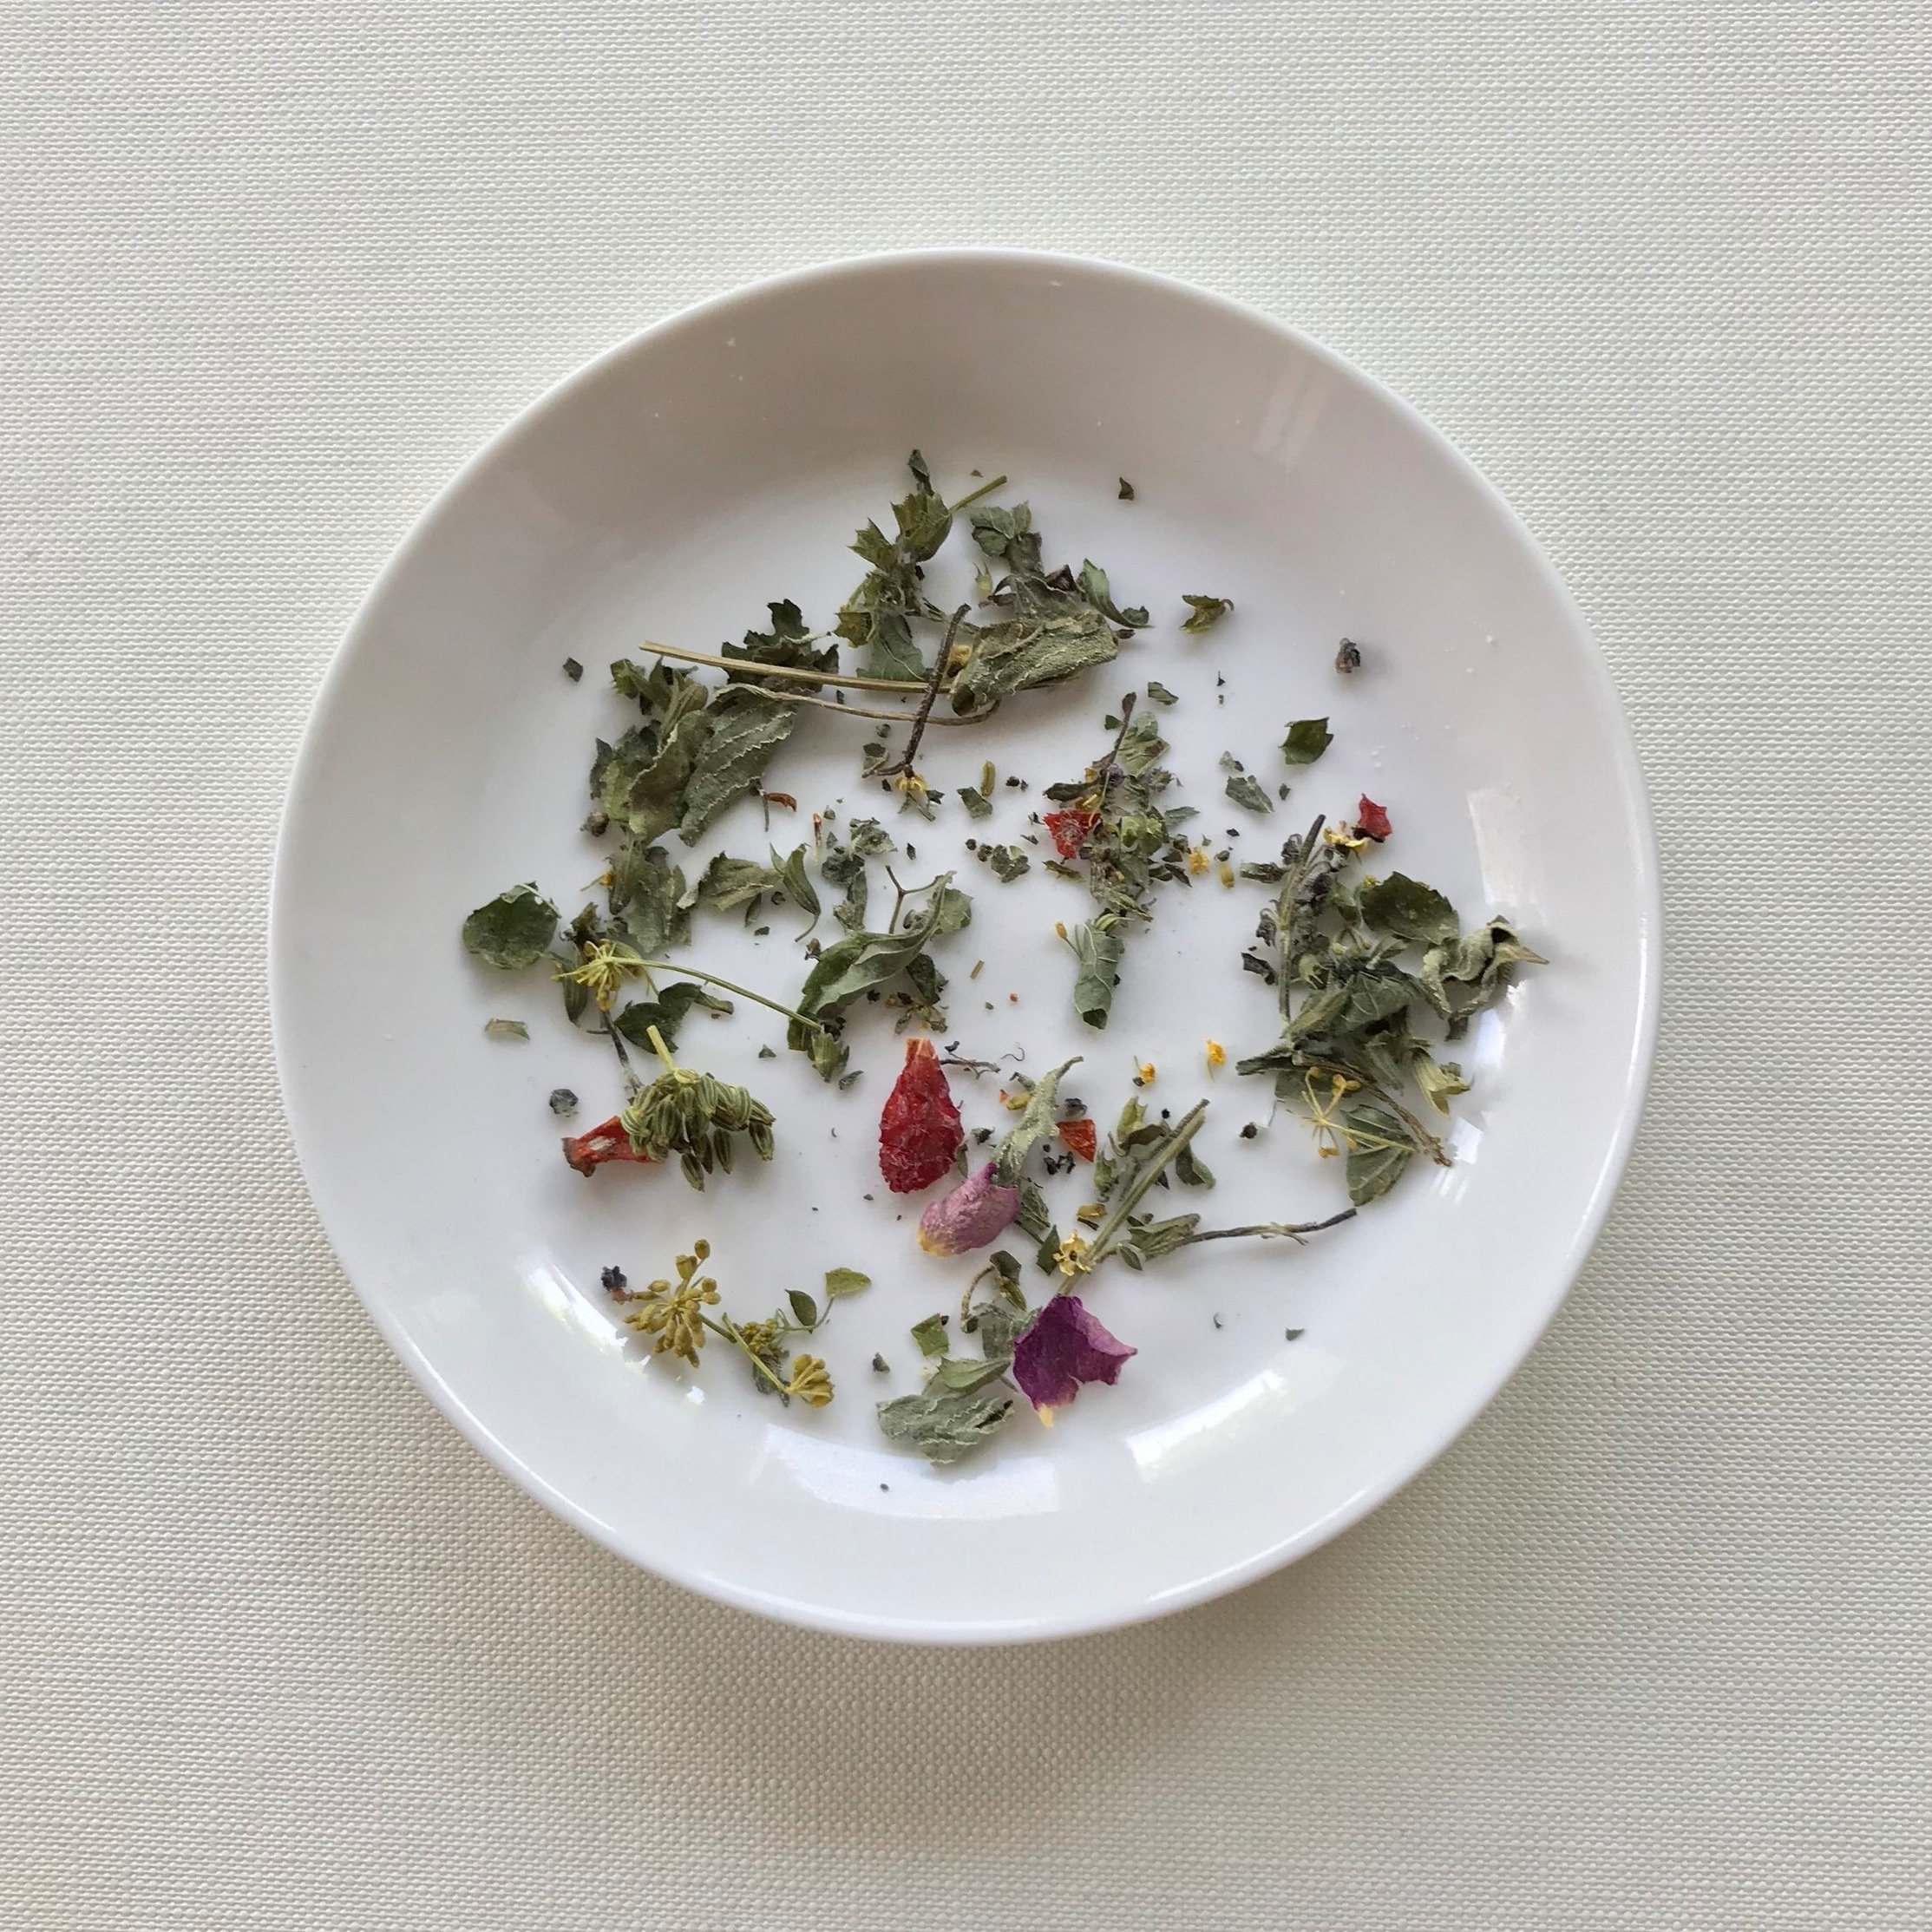 Flower Tea  for your glow, sustainably made in small batches.